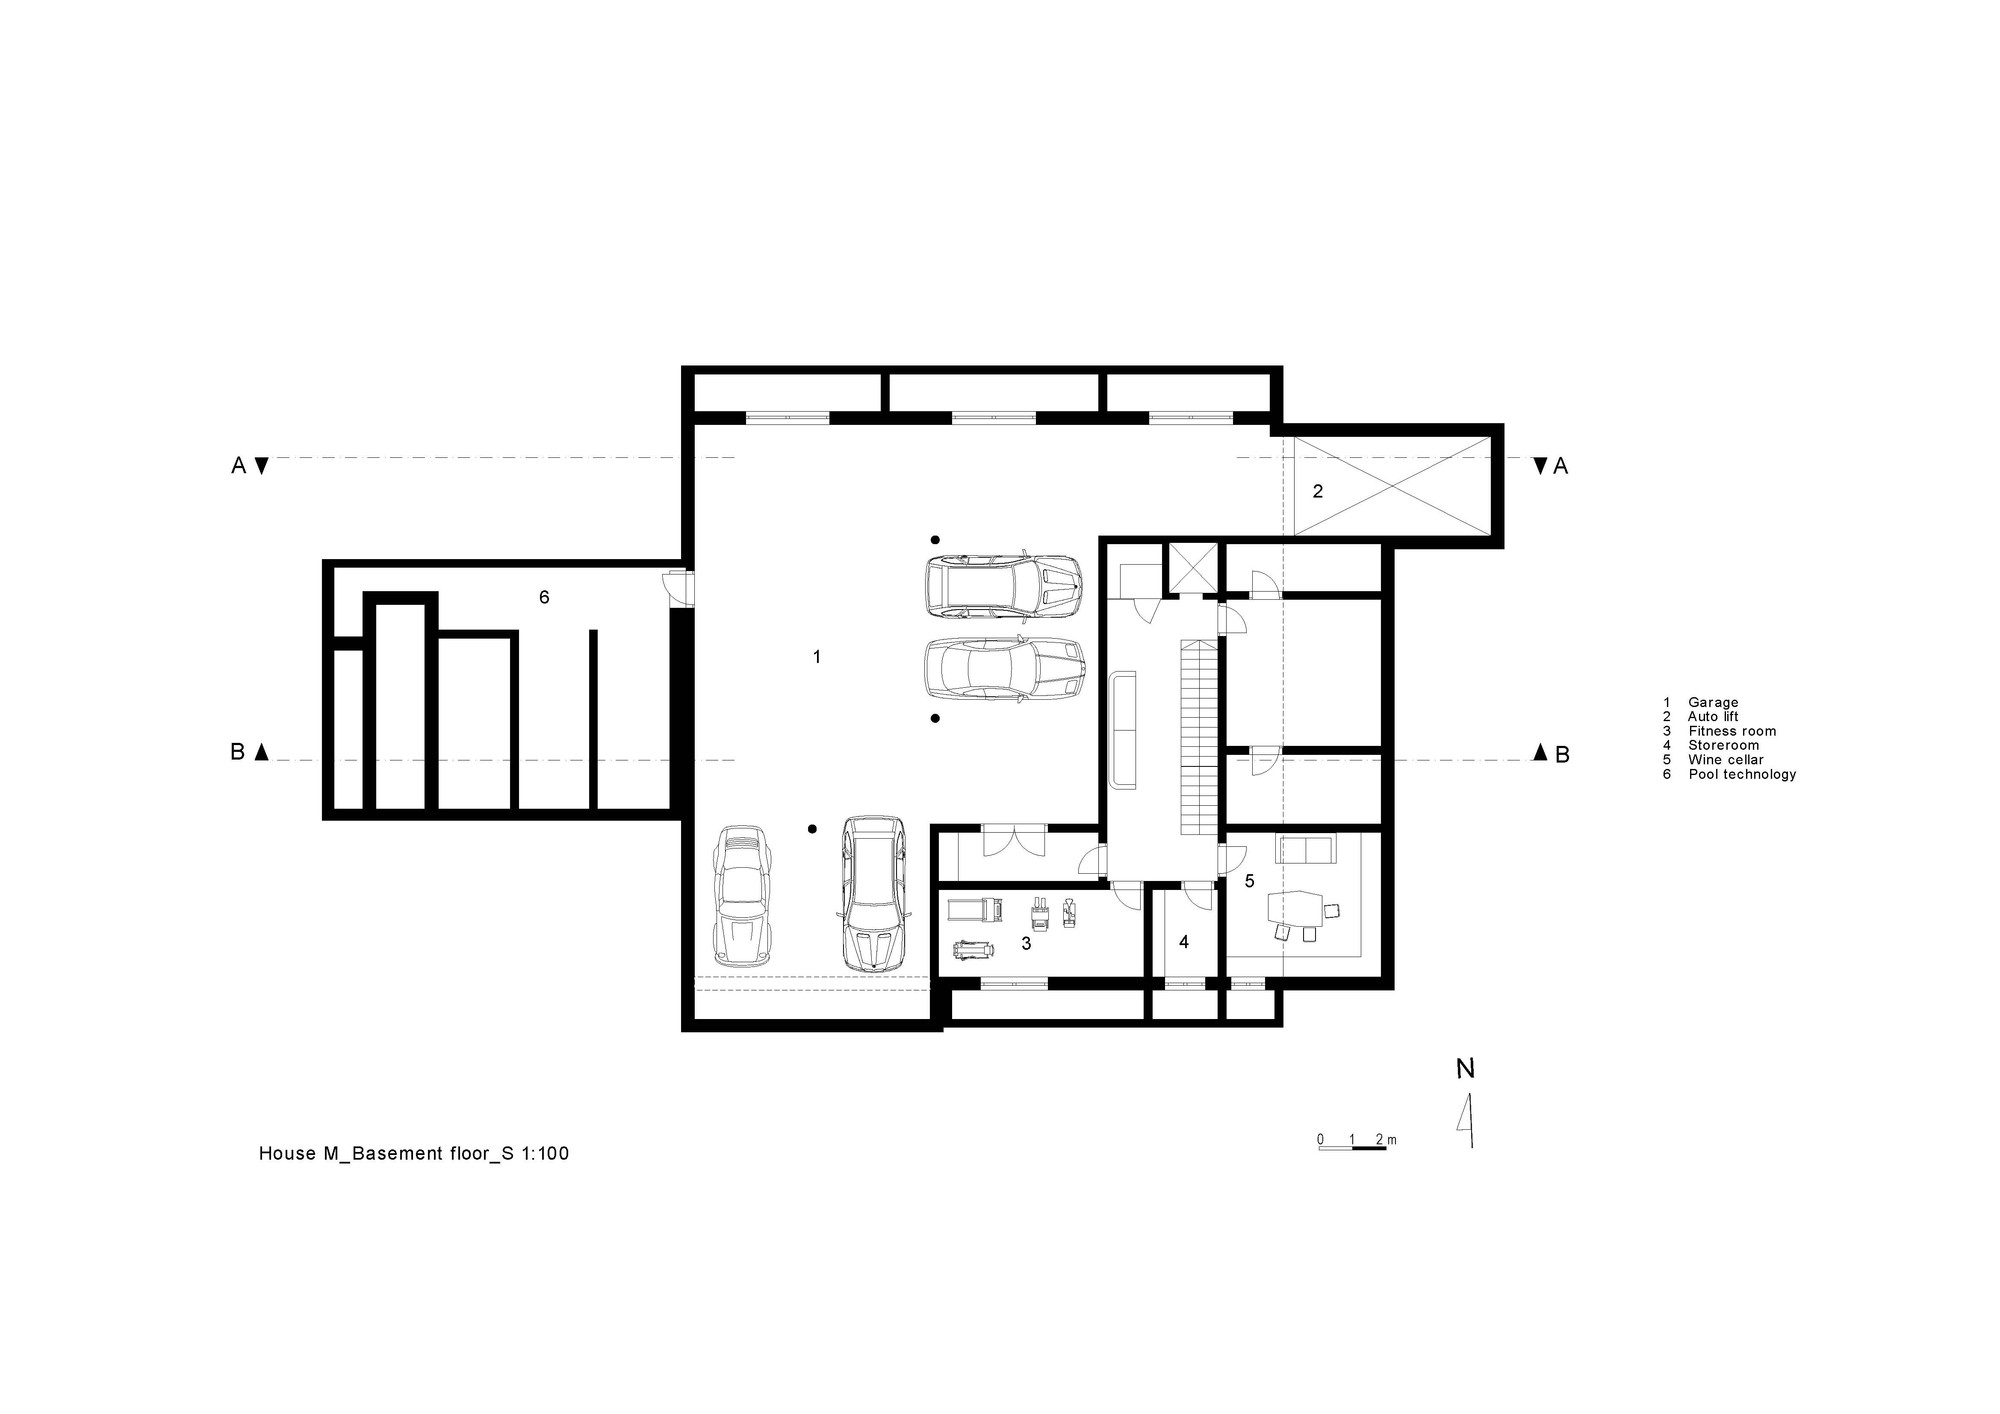 Gallery of house m monovolume architecture design 42 for House floor plans architecture